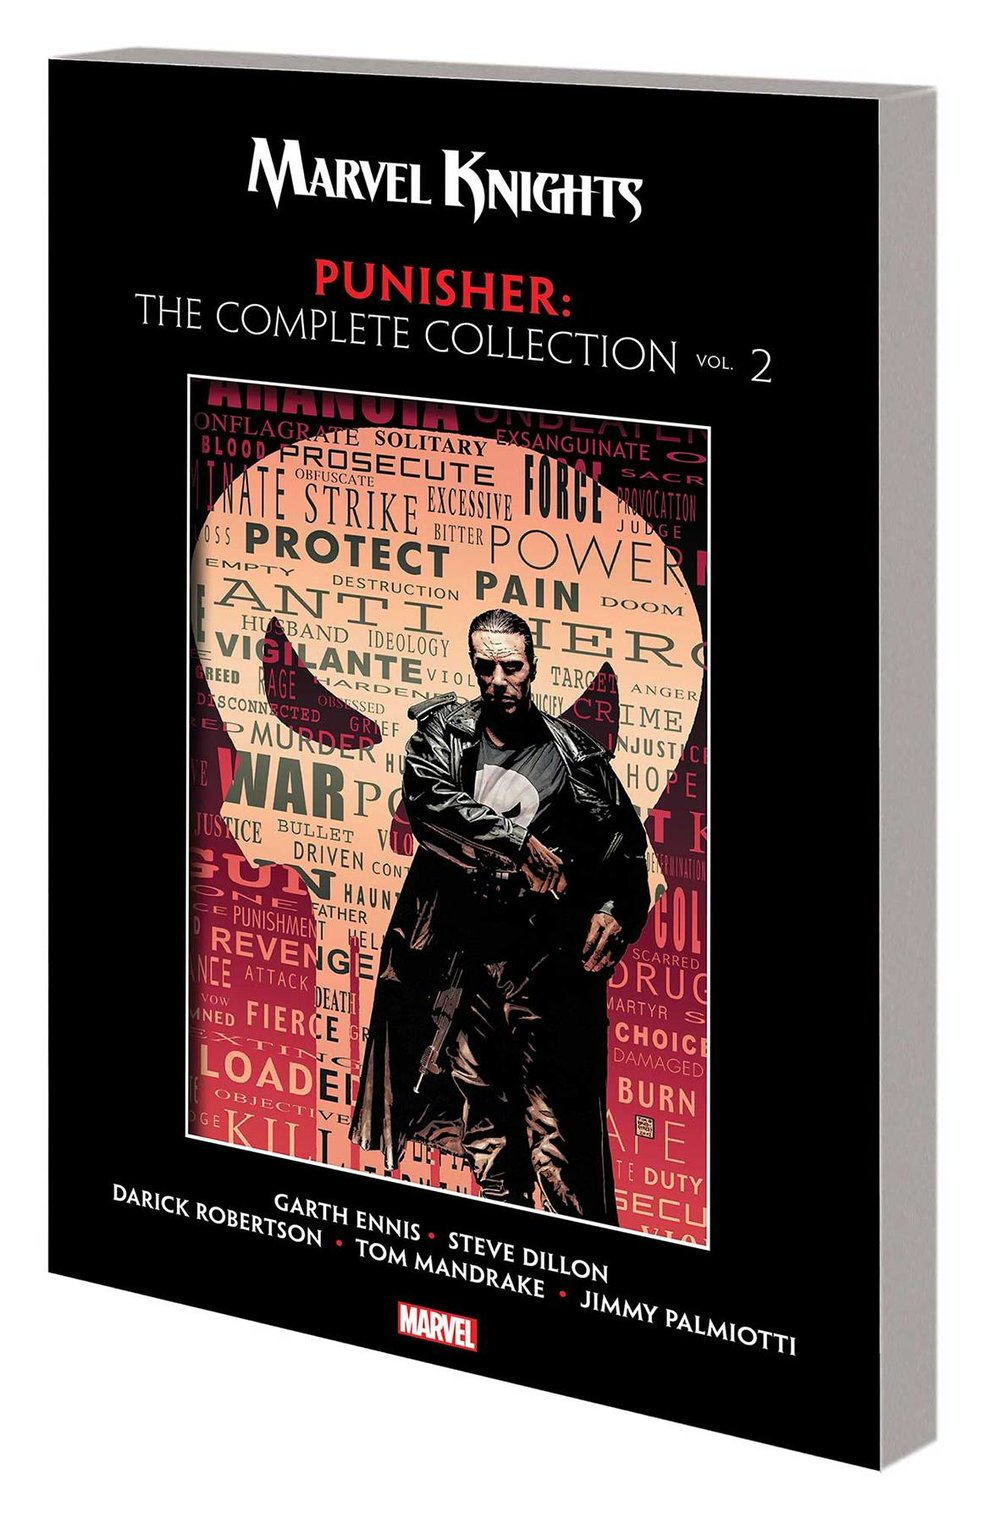 MARVEL KNIGHTS PUNISHER BY ENNIS COMPLETE COLLECTION TP 2.jpg